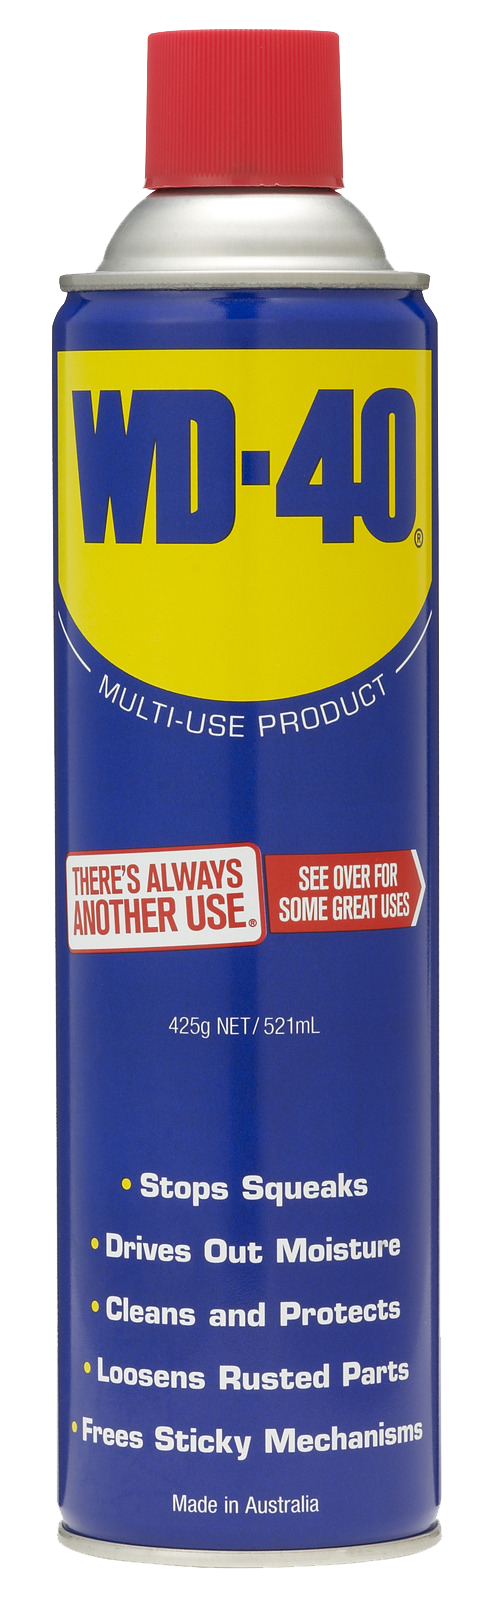 WD-40 Multi-Use Product Aerosol 425g